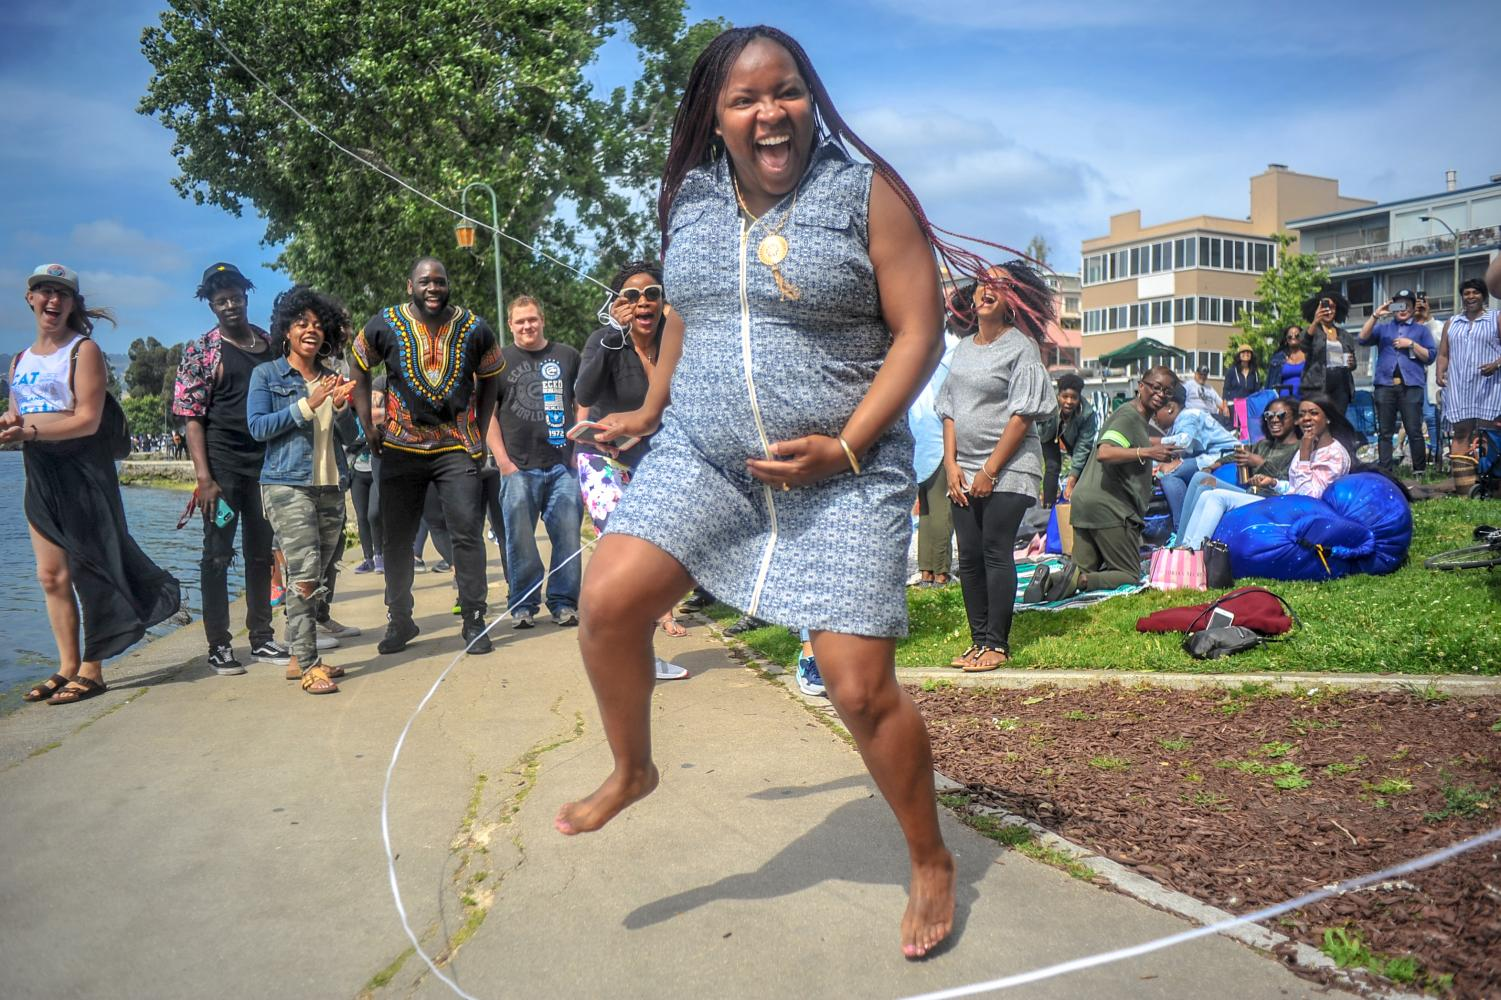 Oakland resident Thoineisha Finley doubledutch jumps while pregnant during the